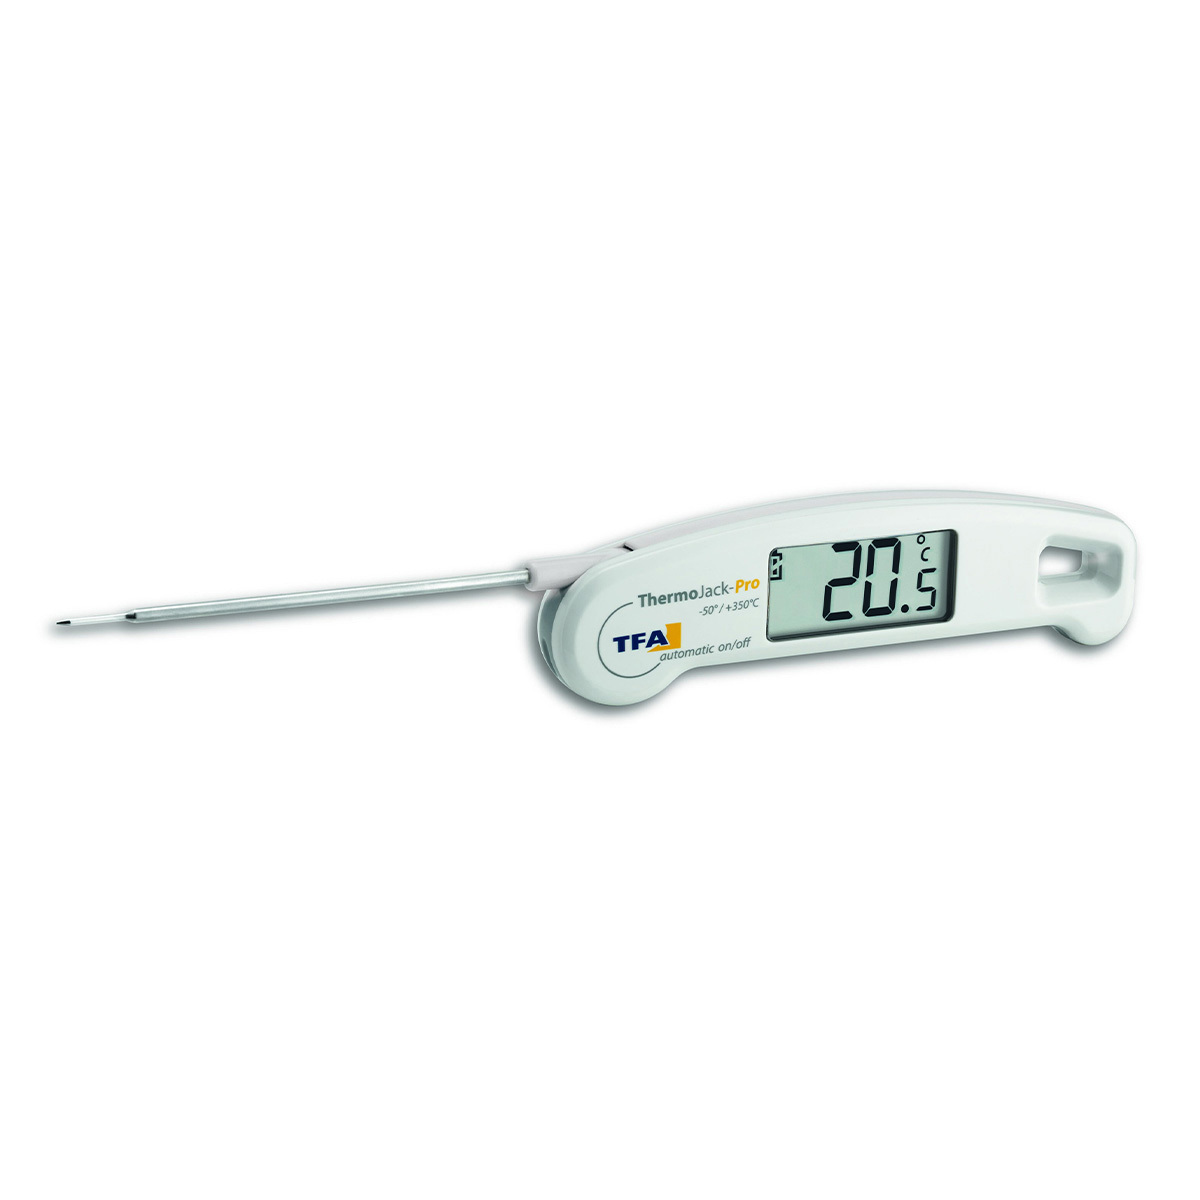 30-1050-02-digitales-einstich-thermometer-themo-jack-pro-1200x1200px.jpg